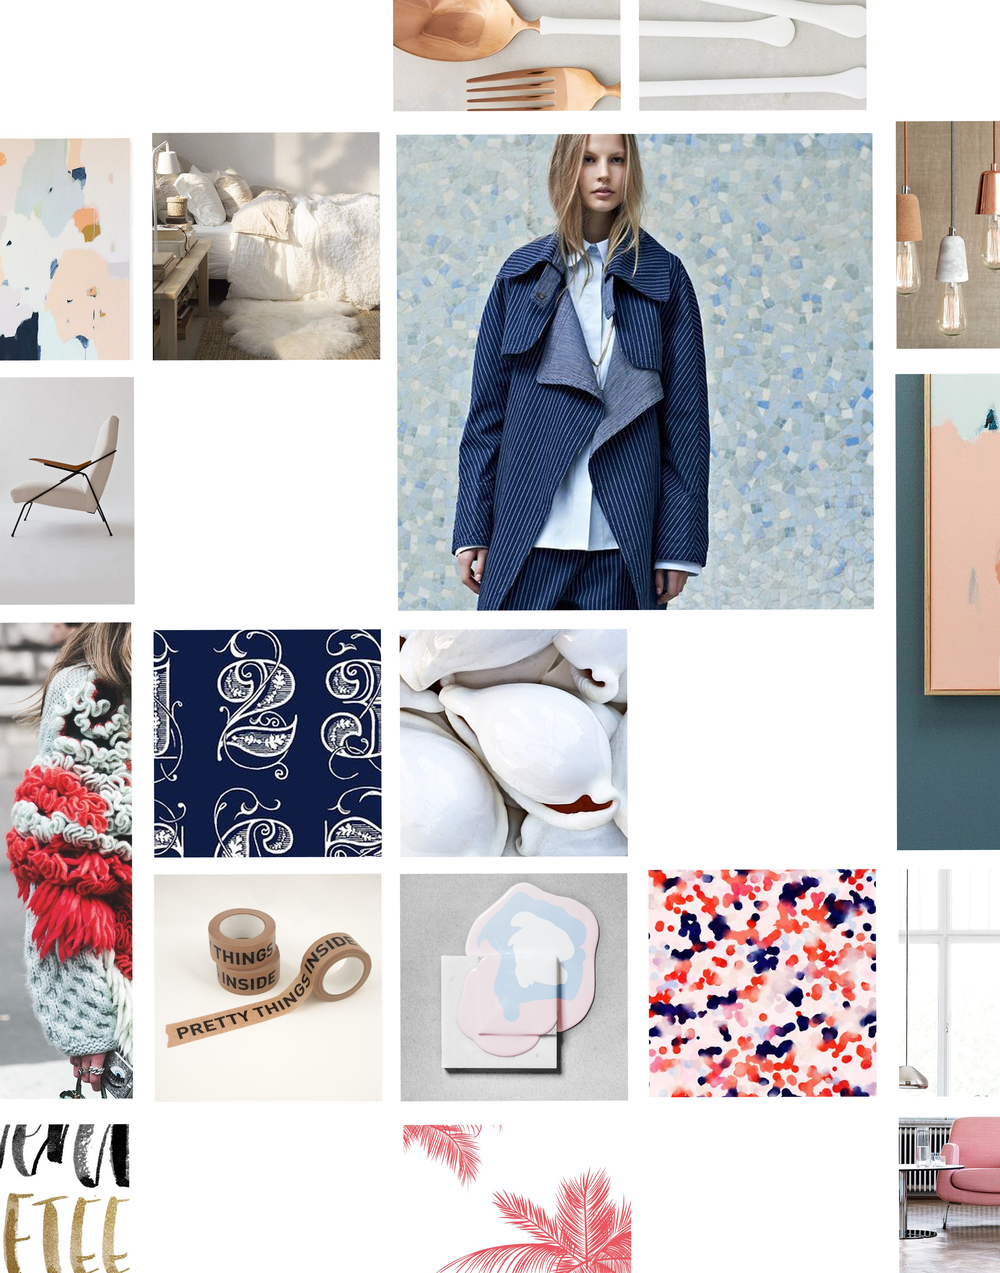 WEEKLY INSPIRATION WITH MONDAY MOOD BOARD 27 | THE PAPER CURATOR